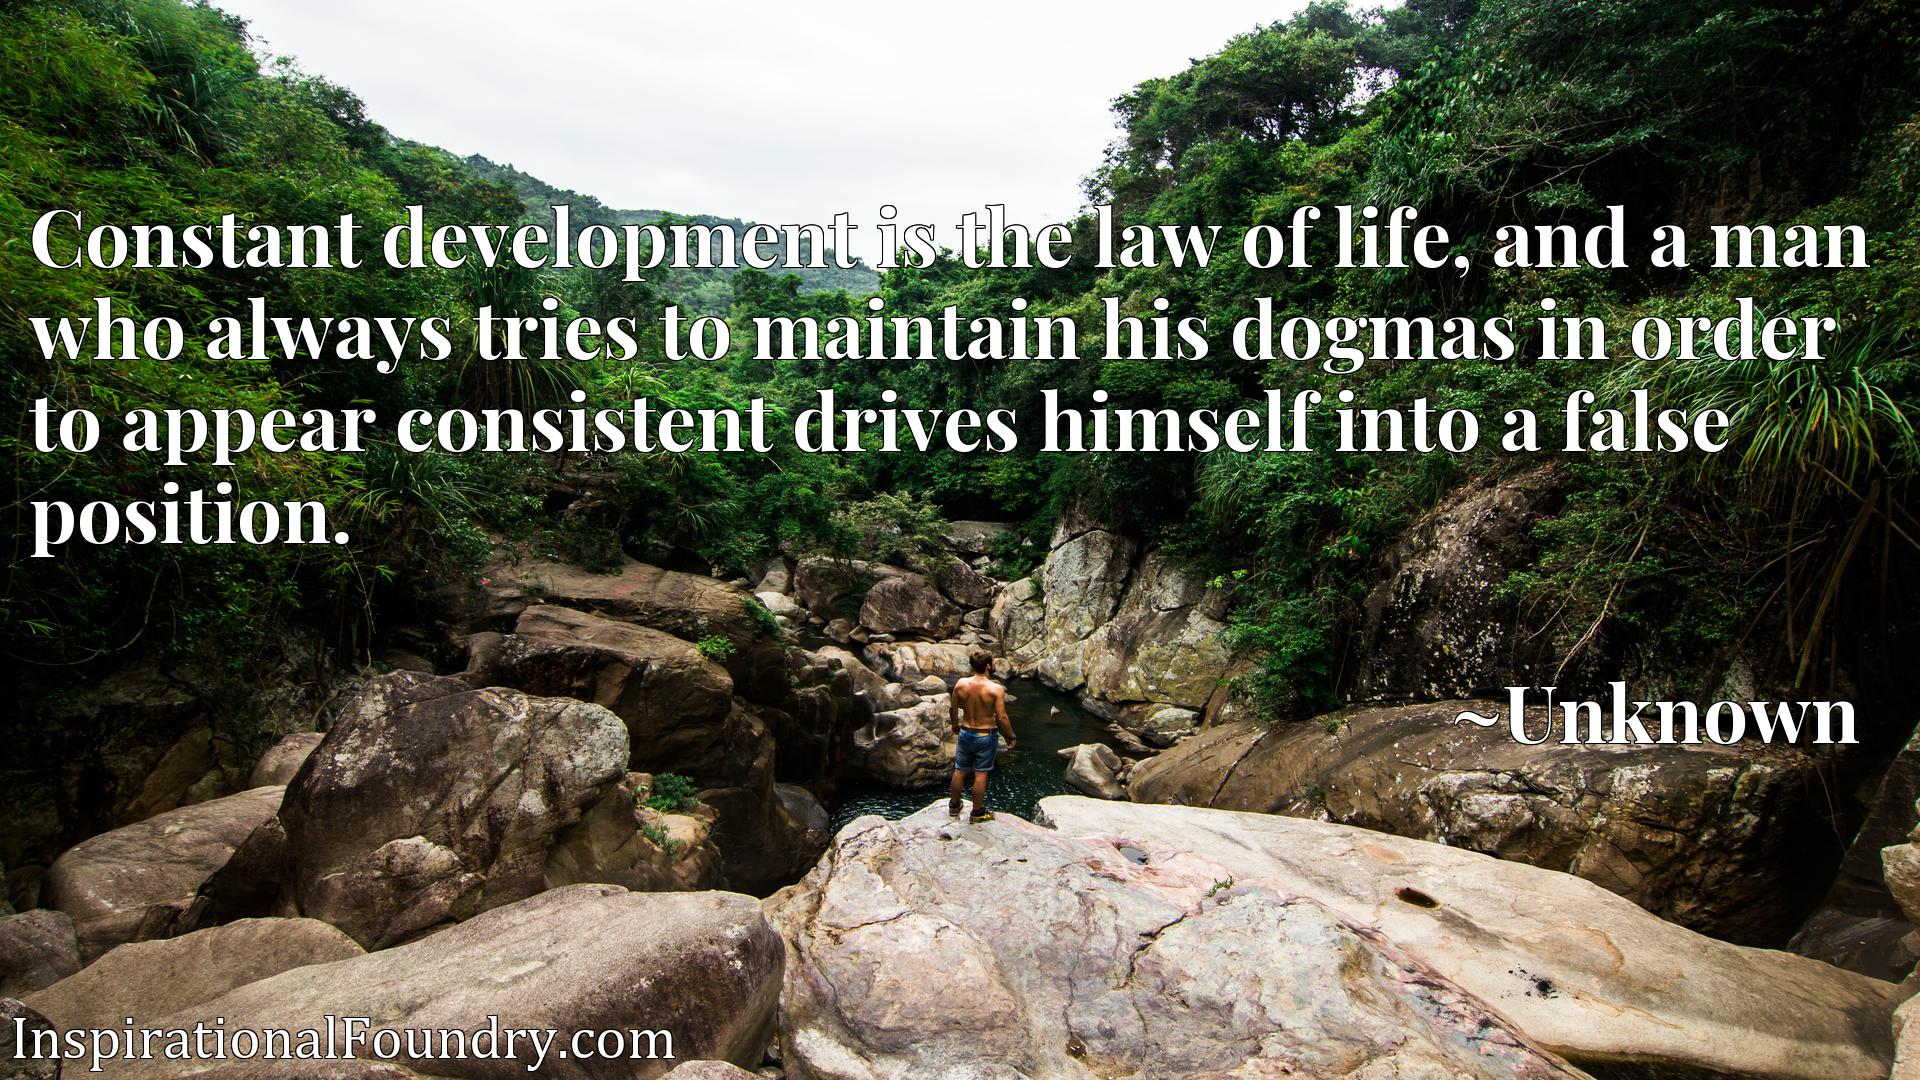 Constant development is the law of life, and a man who always tries to maintain his dogmas in order to appear consistent drives himself into a false position.